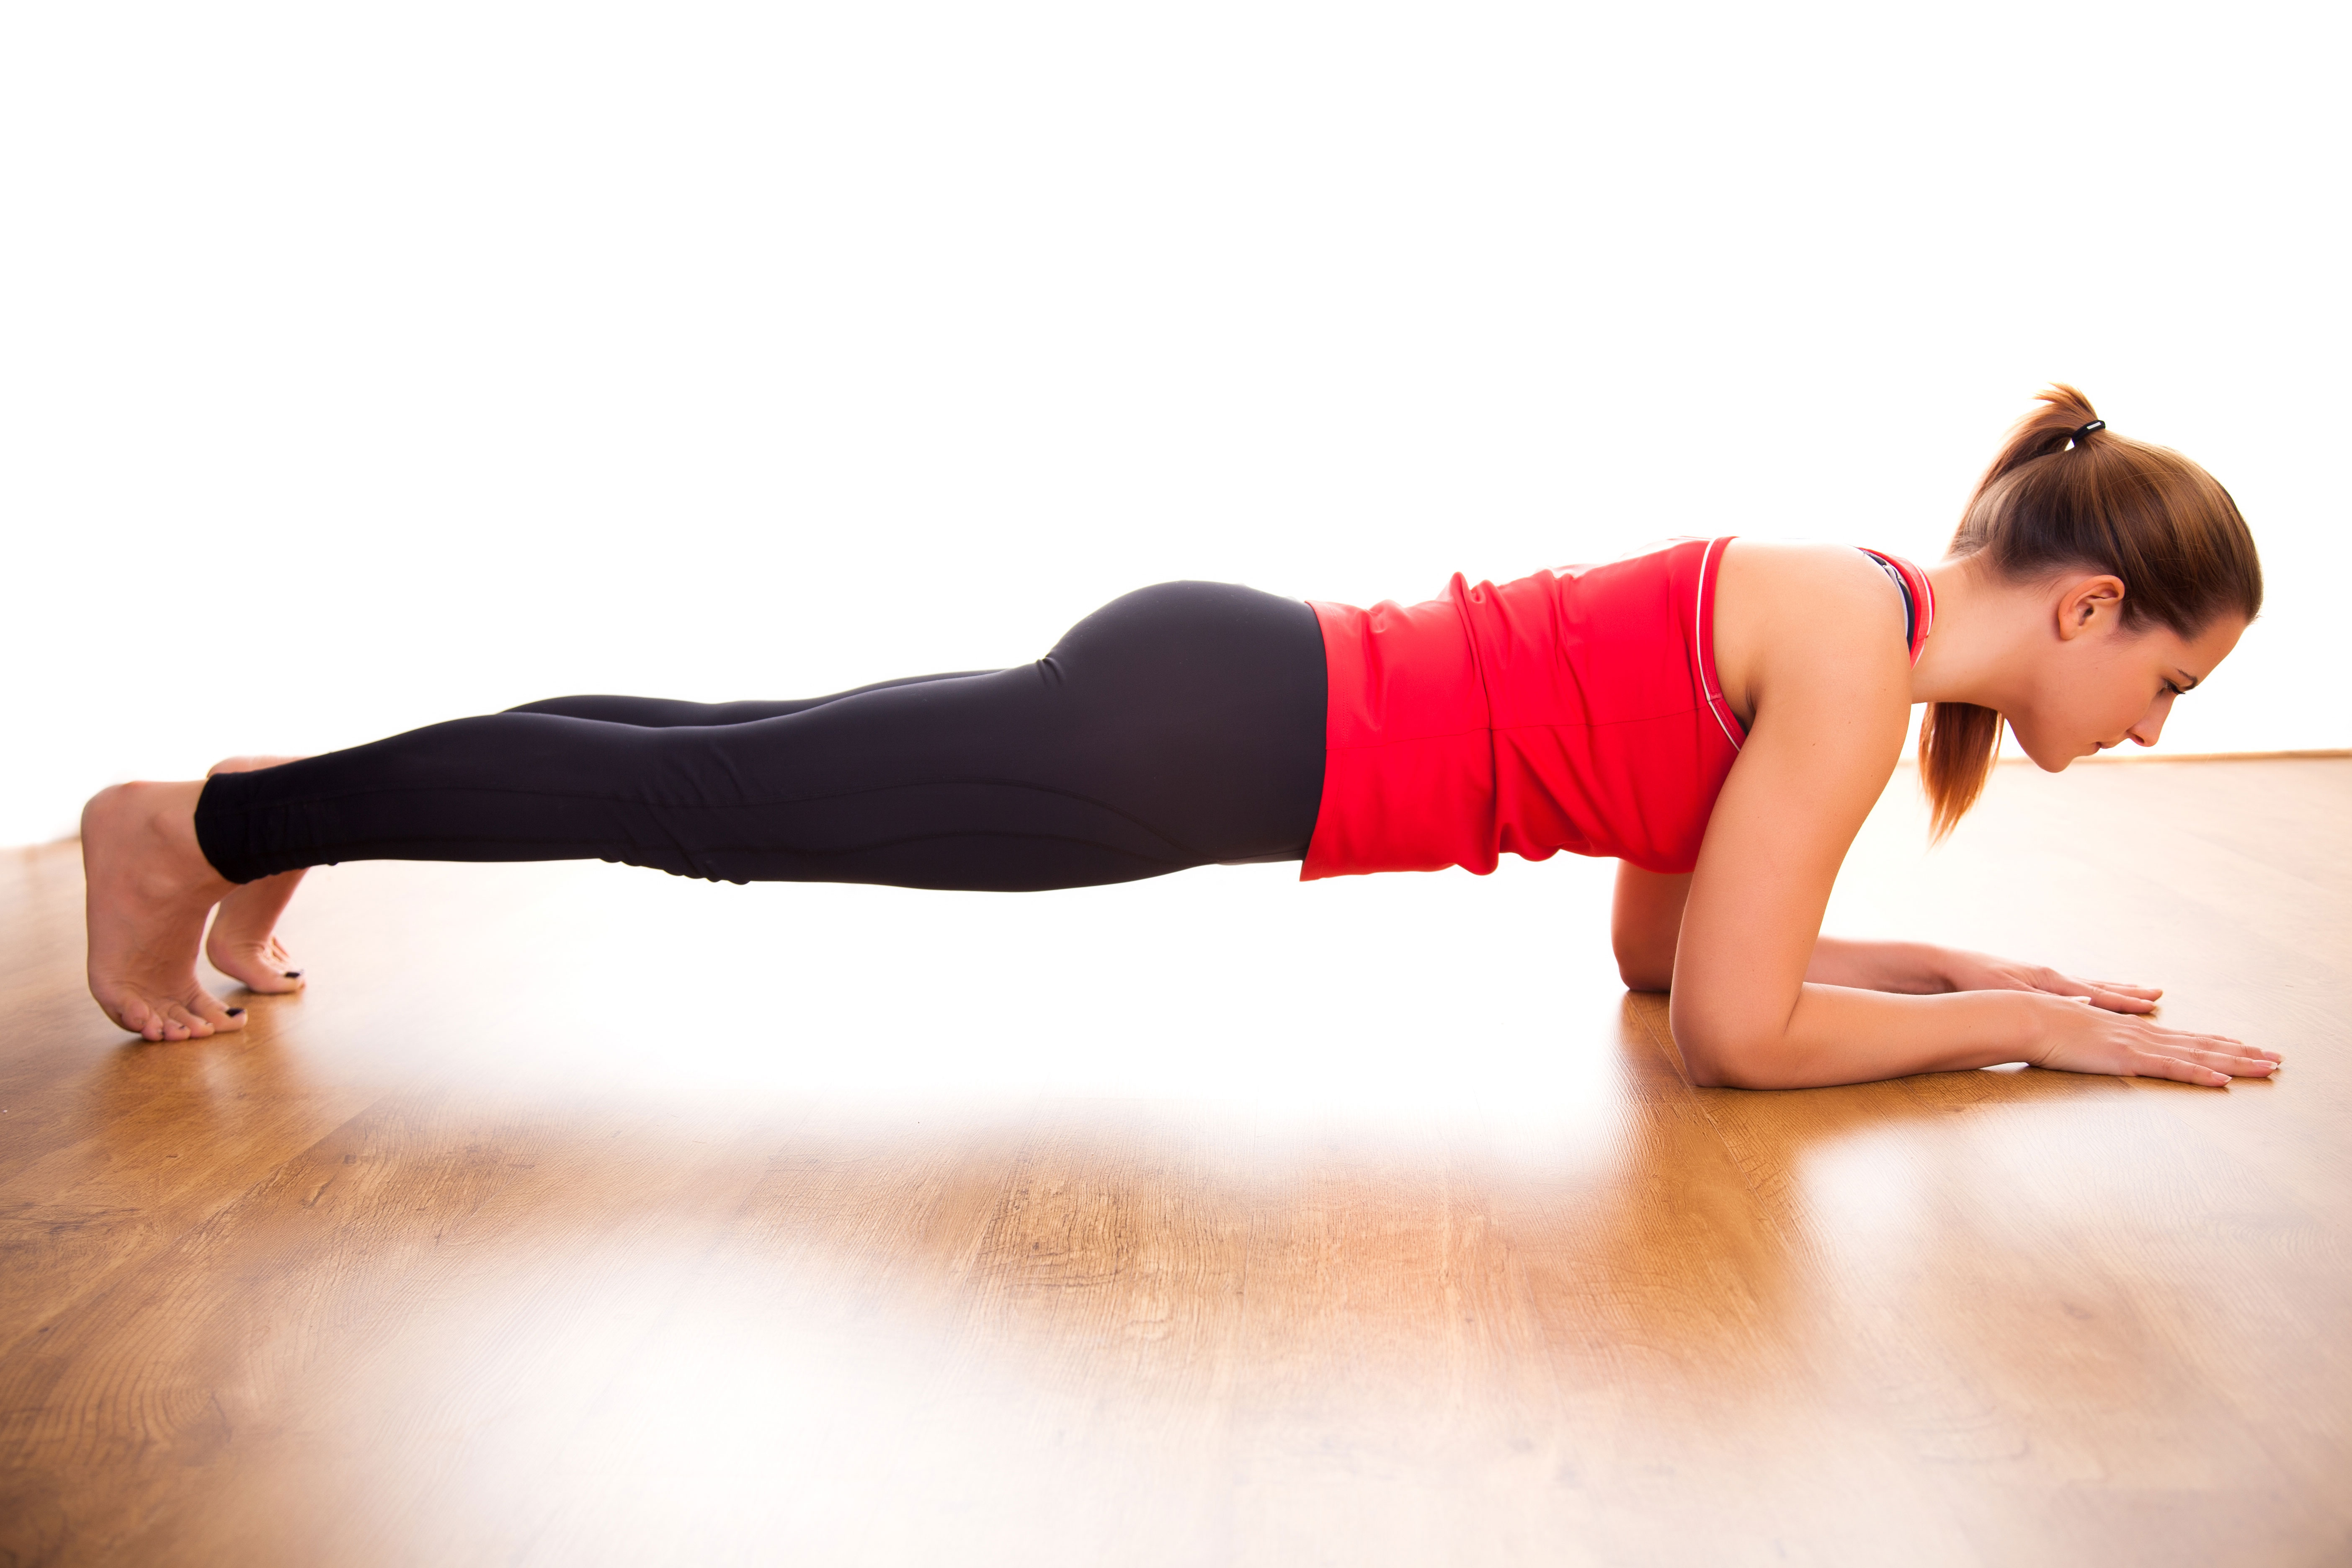 50 Yoga Poses To Help You Slim Down & Tone Your Body   Simplemost